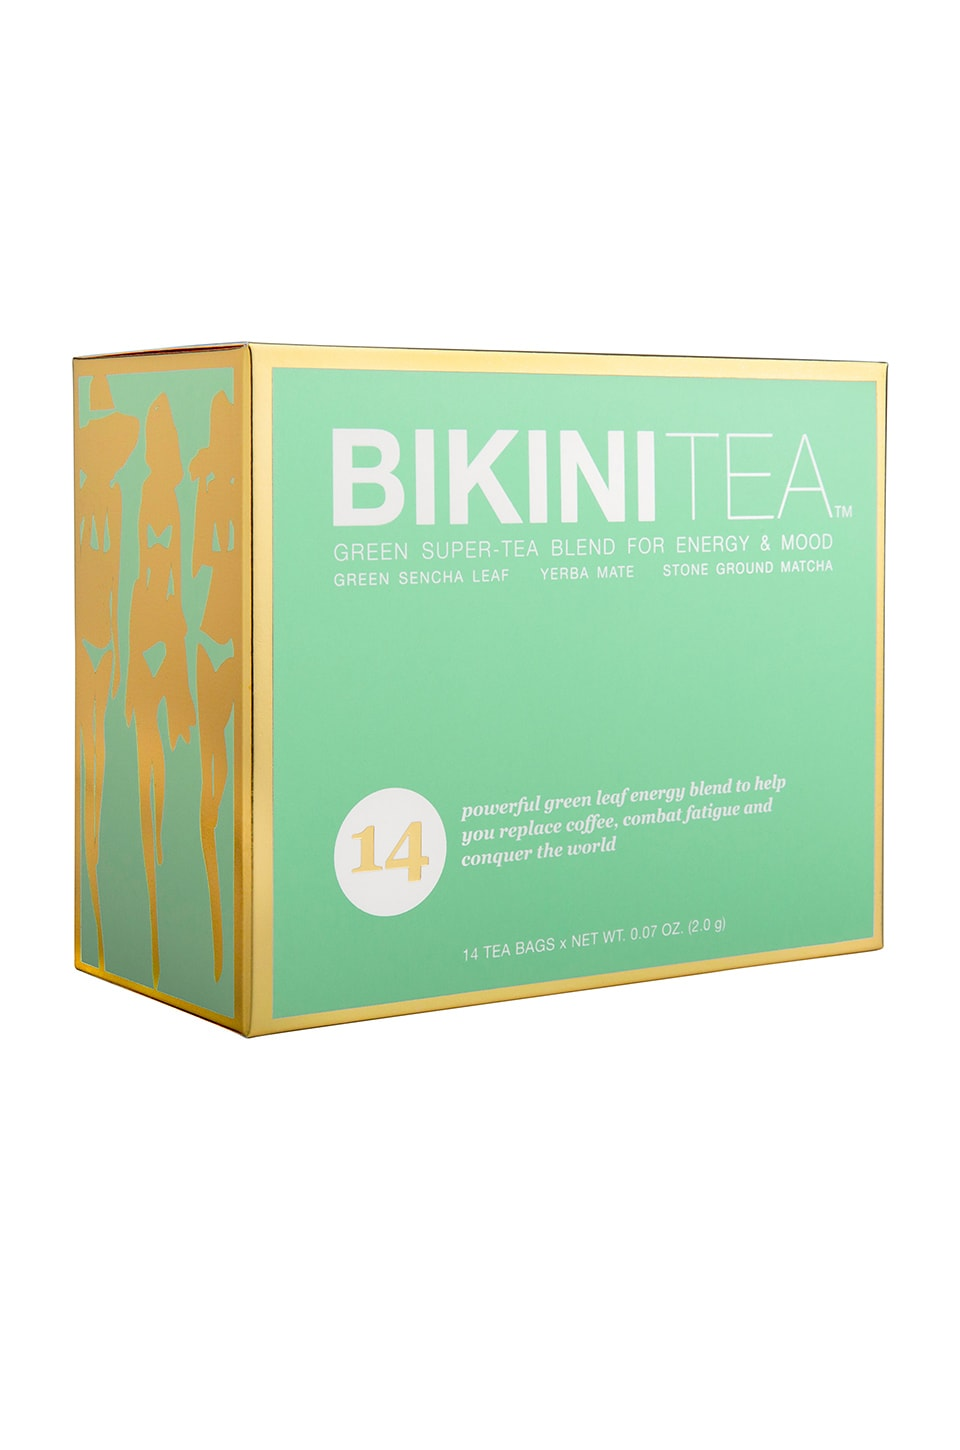 BIKINI CLEANSE Bikini Tea: Green Energy Boost in Beauty: Na